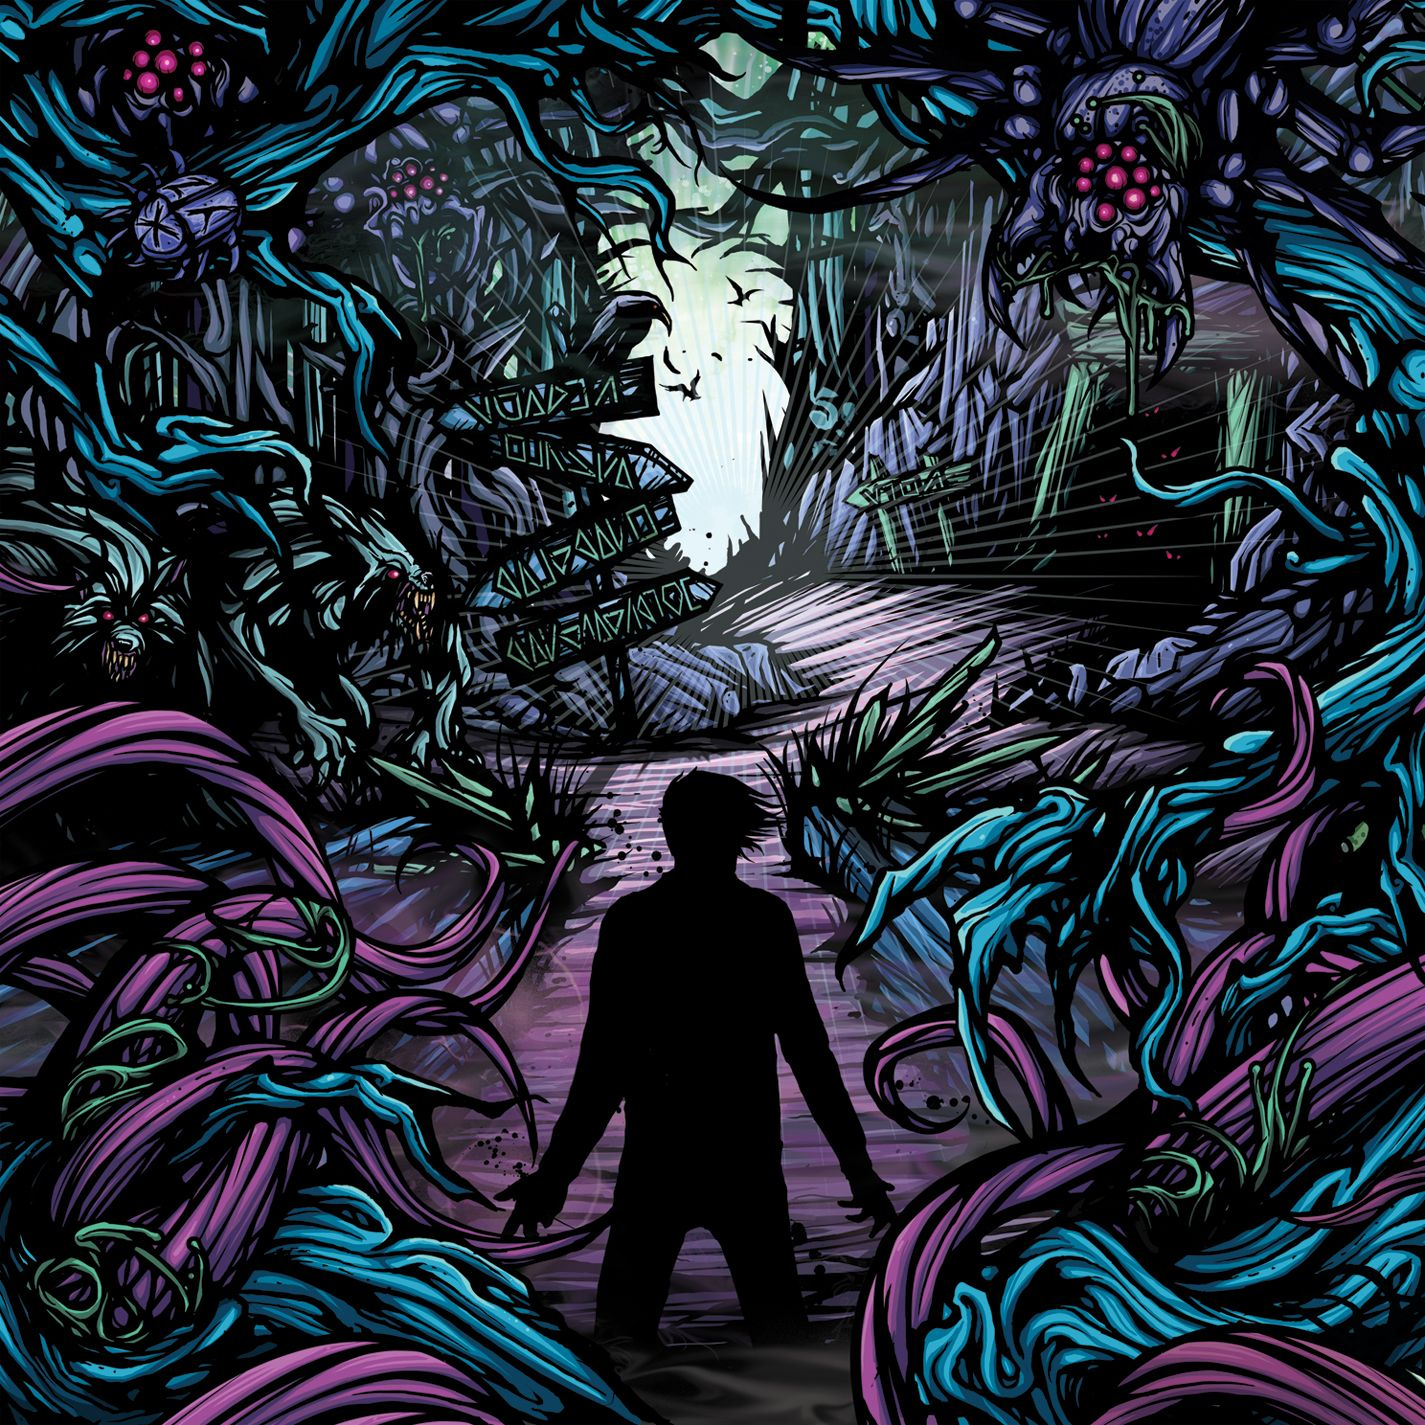 Donnelly's A2 Blog.: November 4th - CD Cover Analysis A Day To Remember Homesick Album Cover